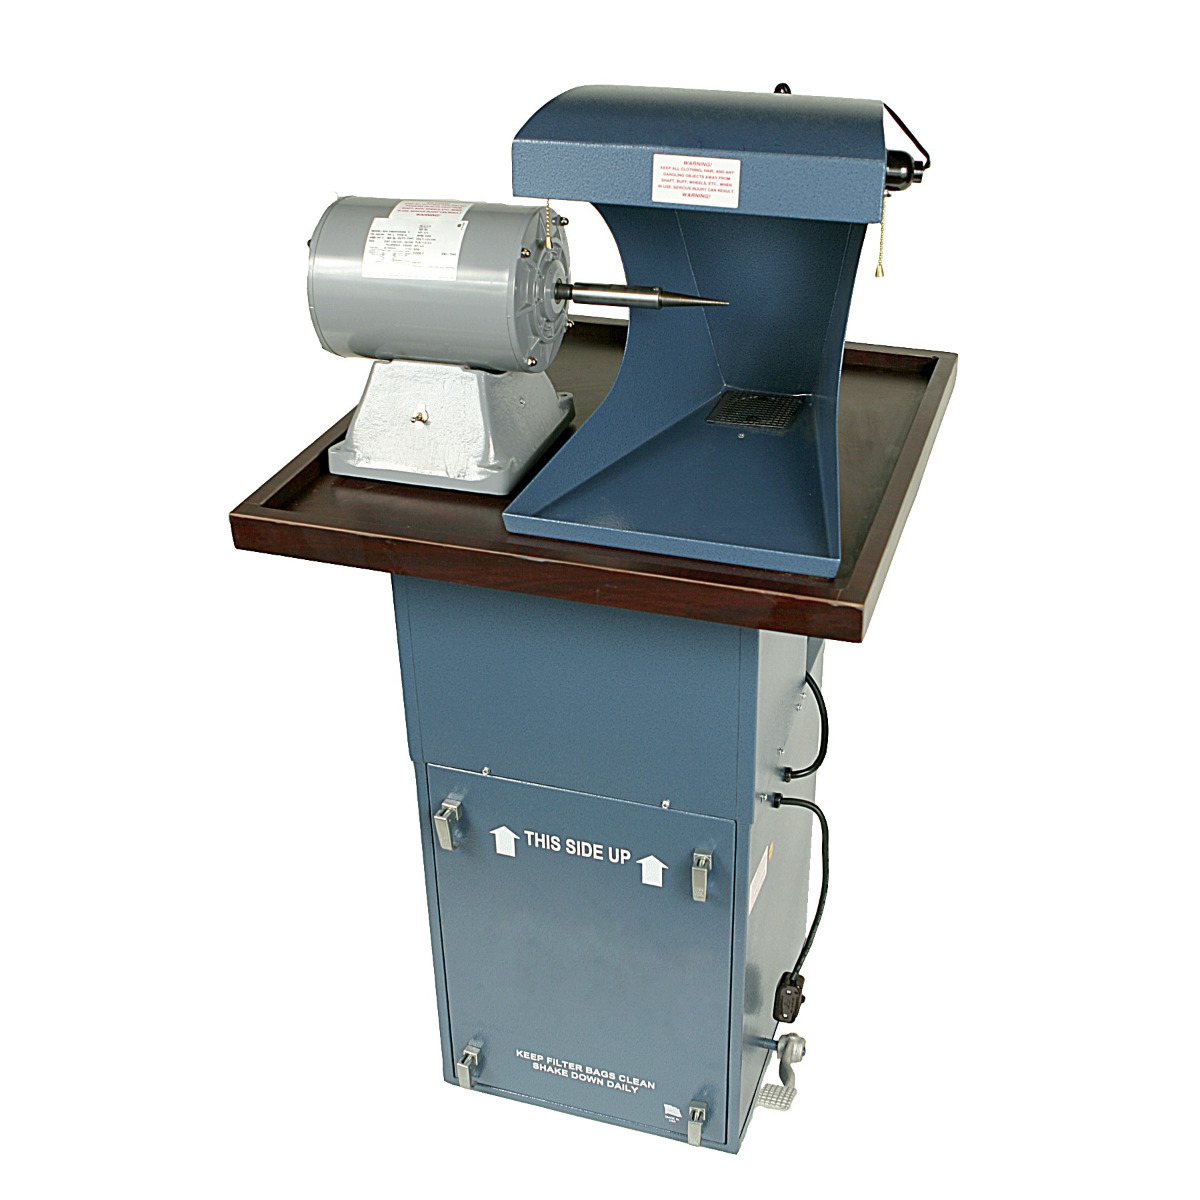 Polishing Station - 1/2 HP Dust Collector, 3/4 HP Single Spindle Polishing Motor